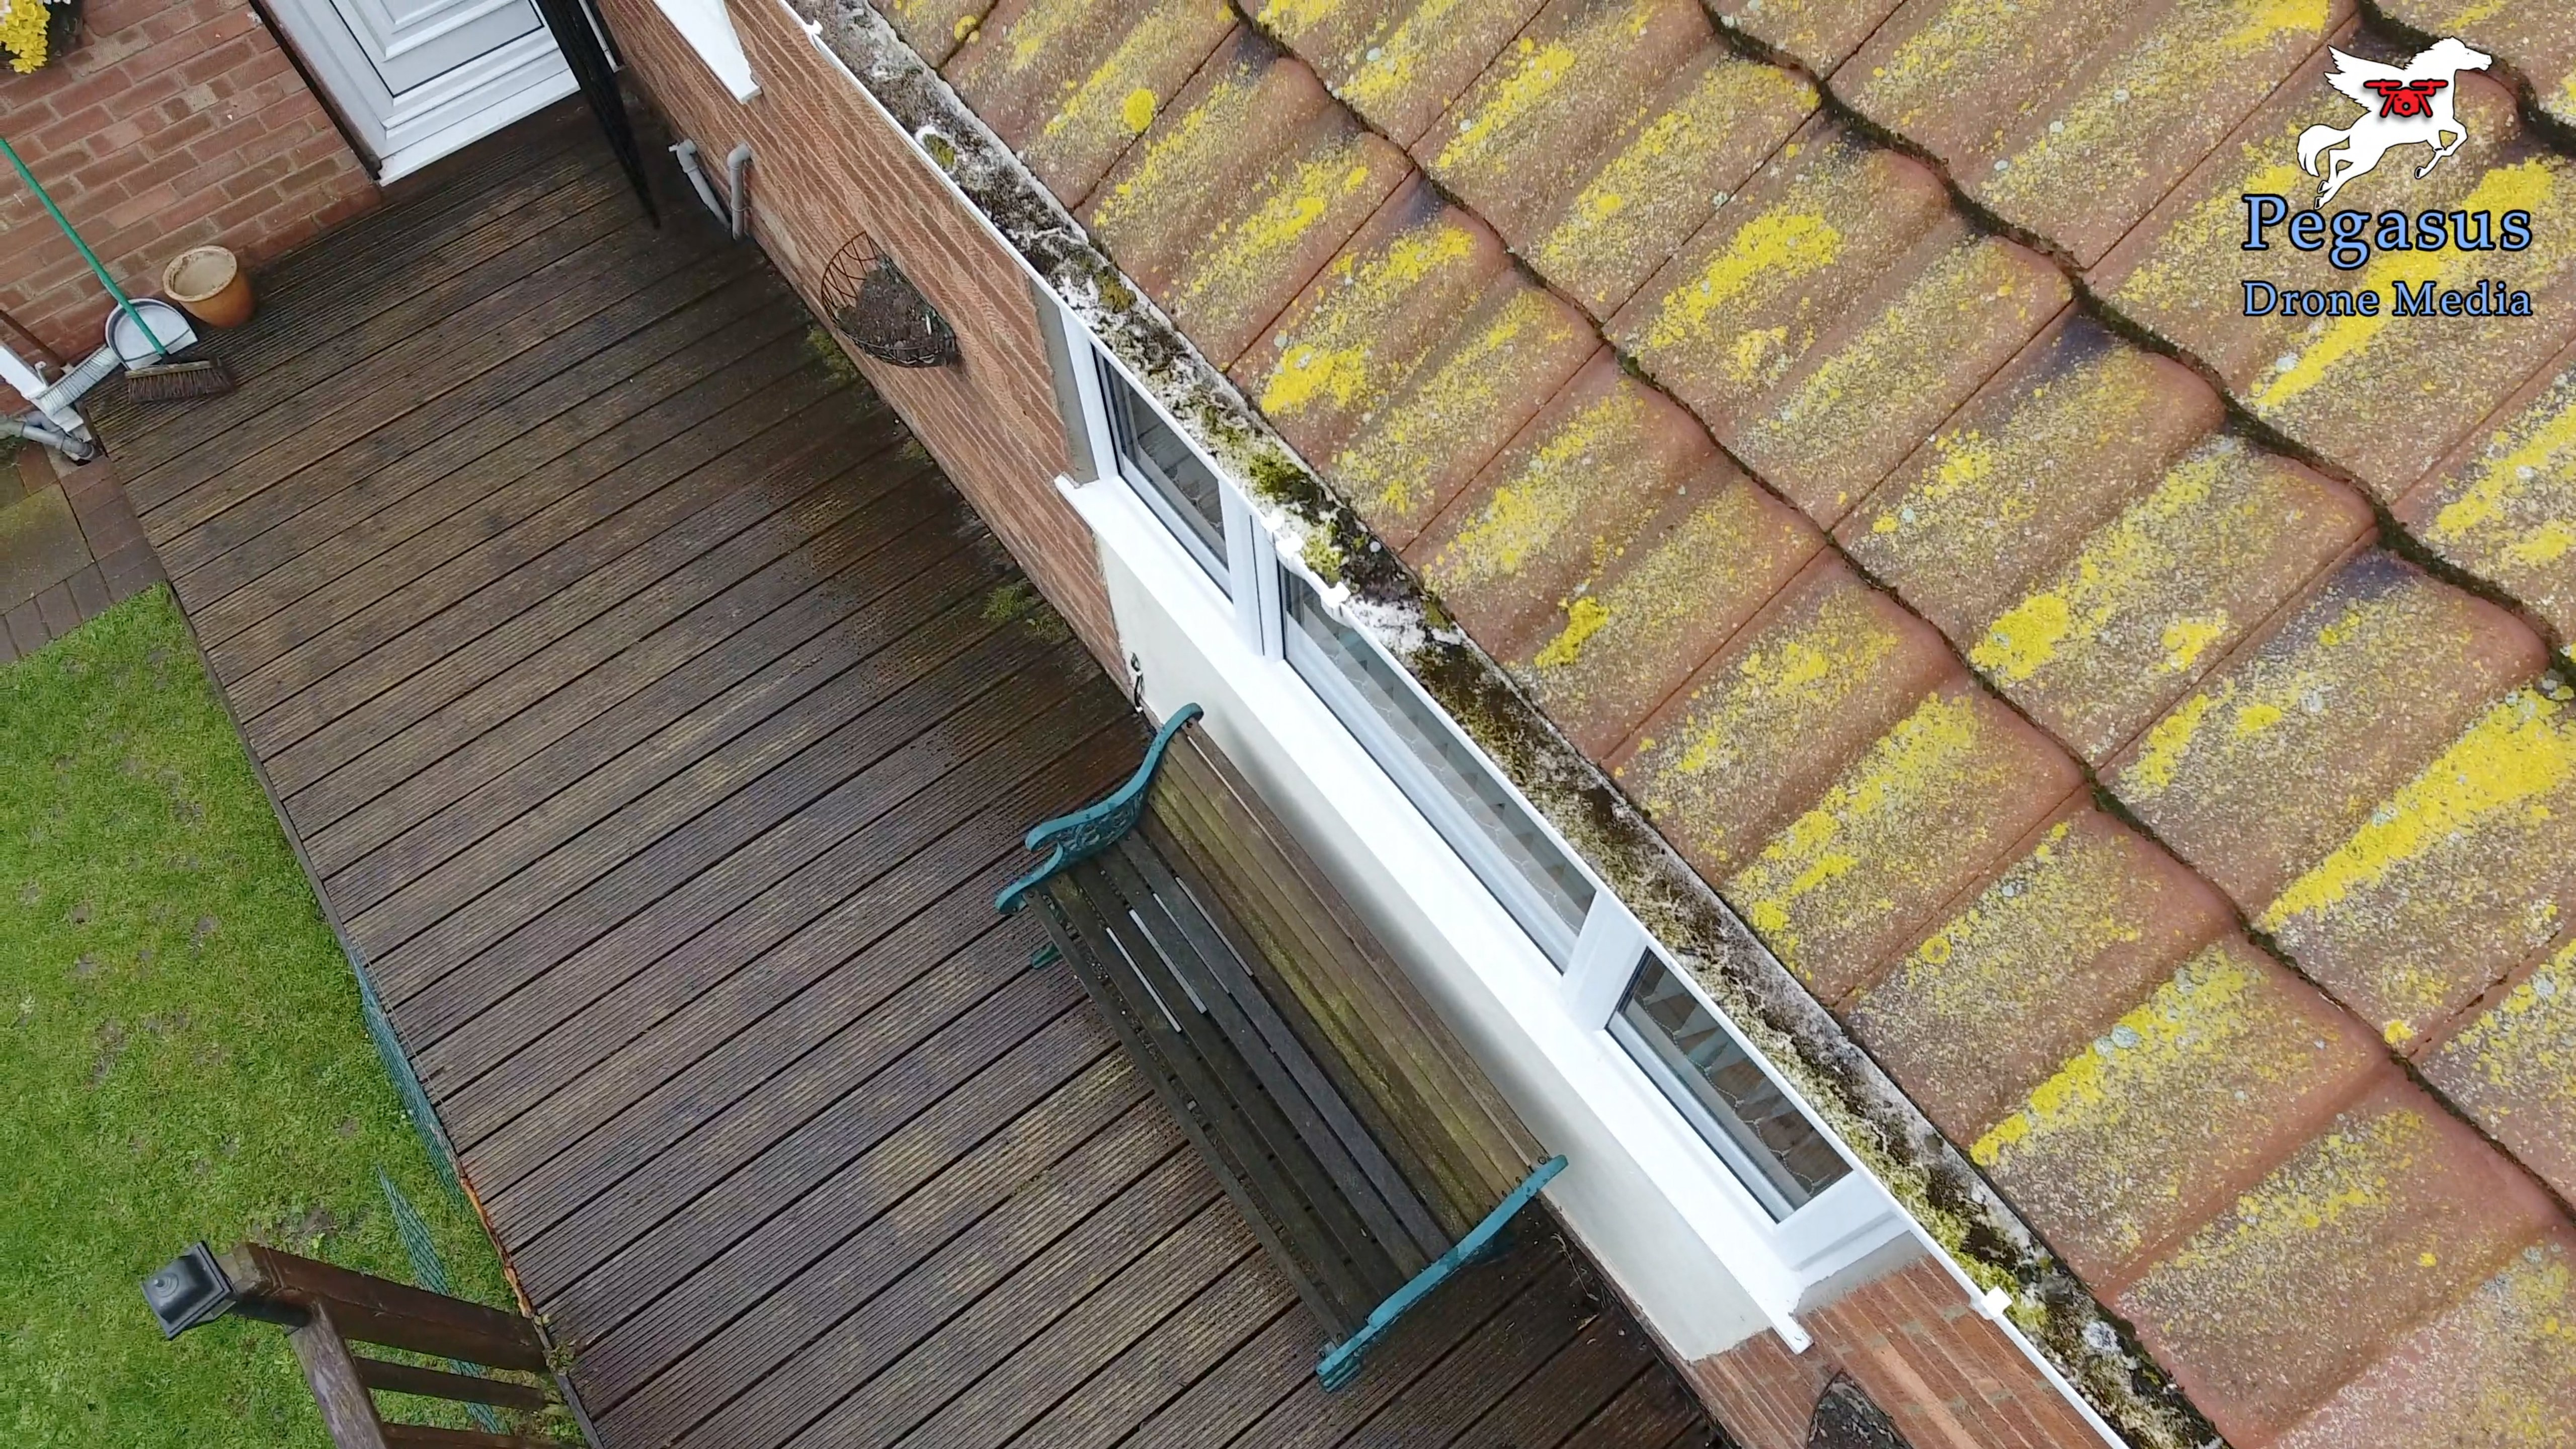 Pegasus Drone Media aerial videography and photography of guttering